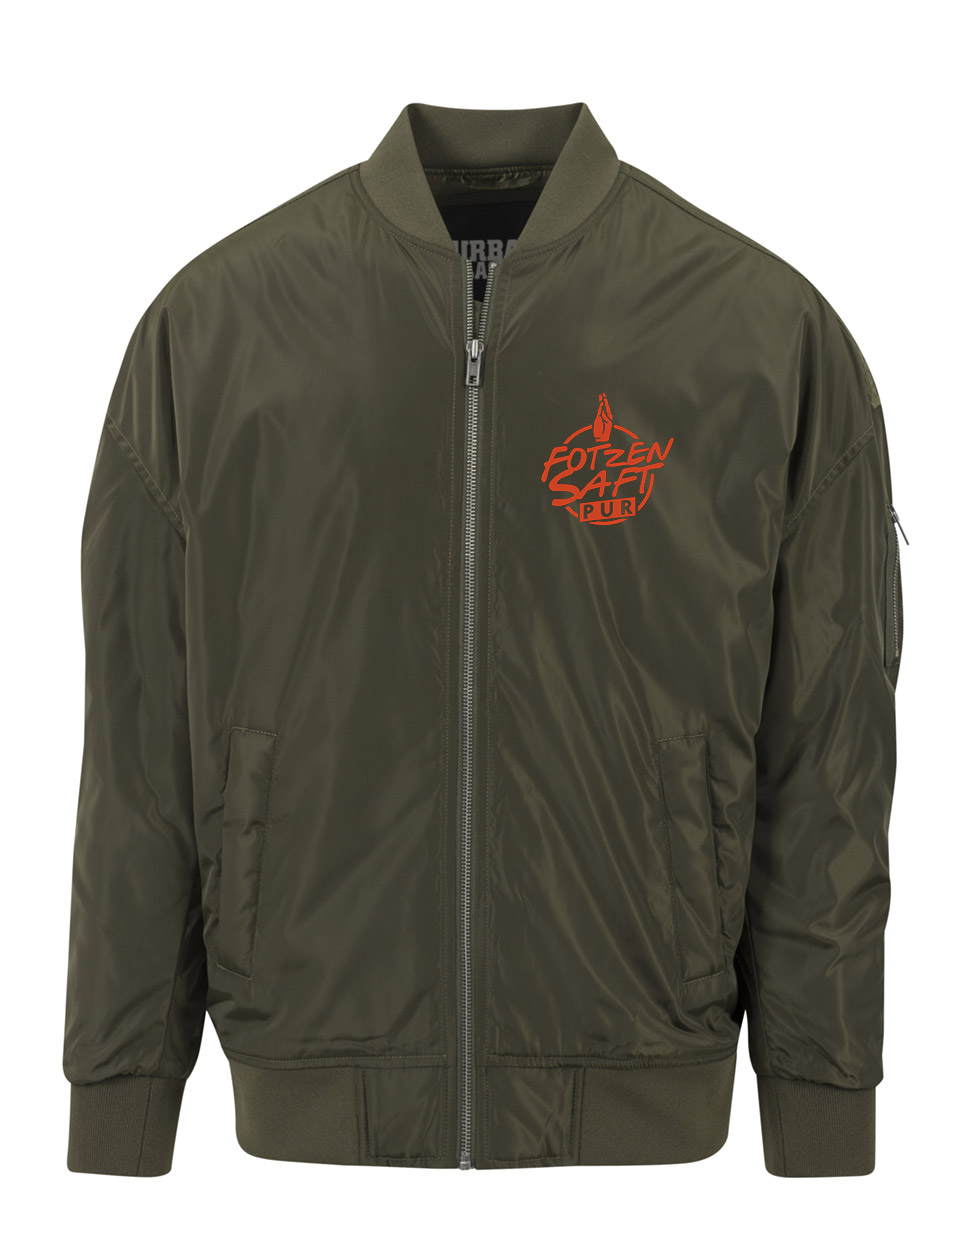 Fotzensaft Overzised Bomber Jacket orange auf dark olive